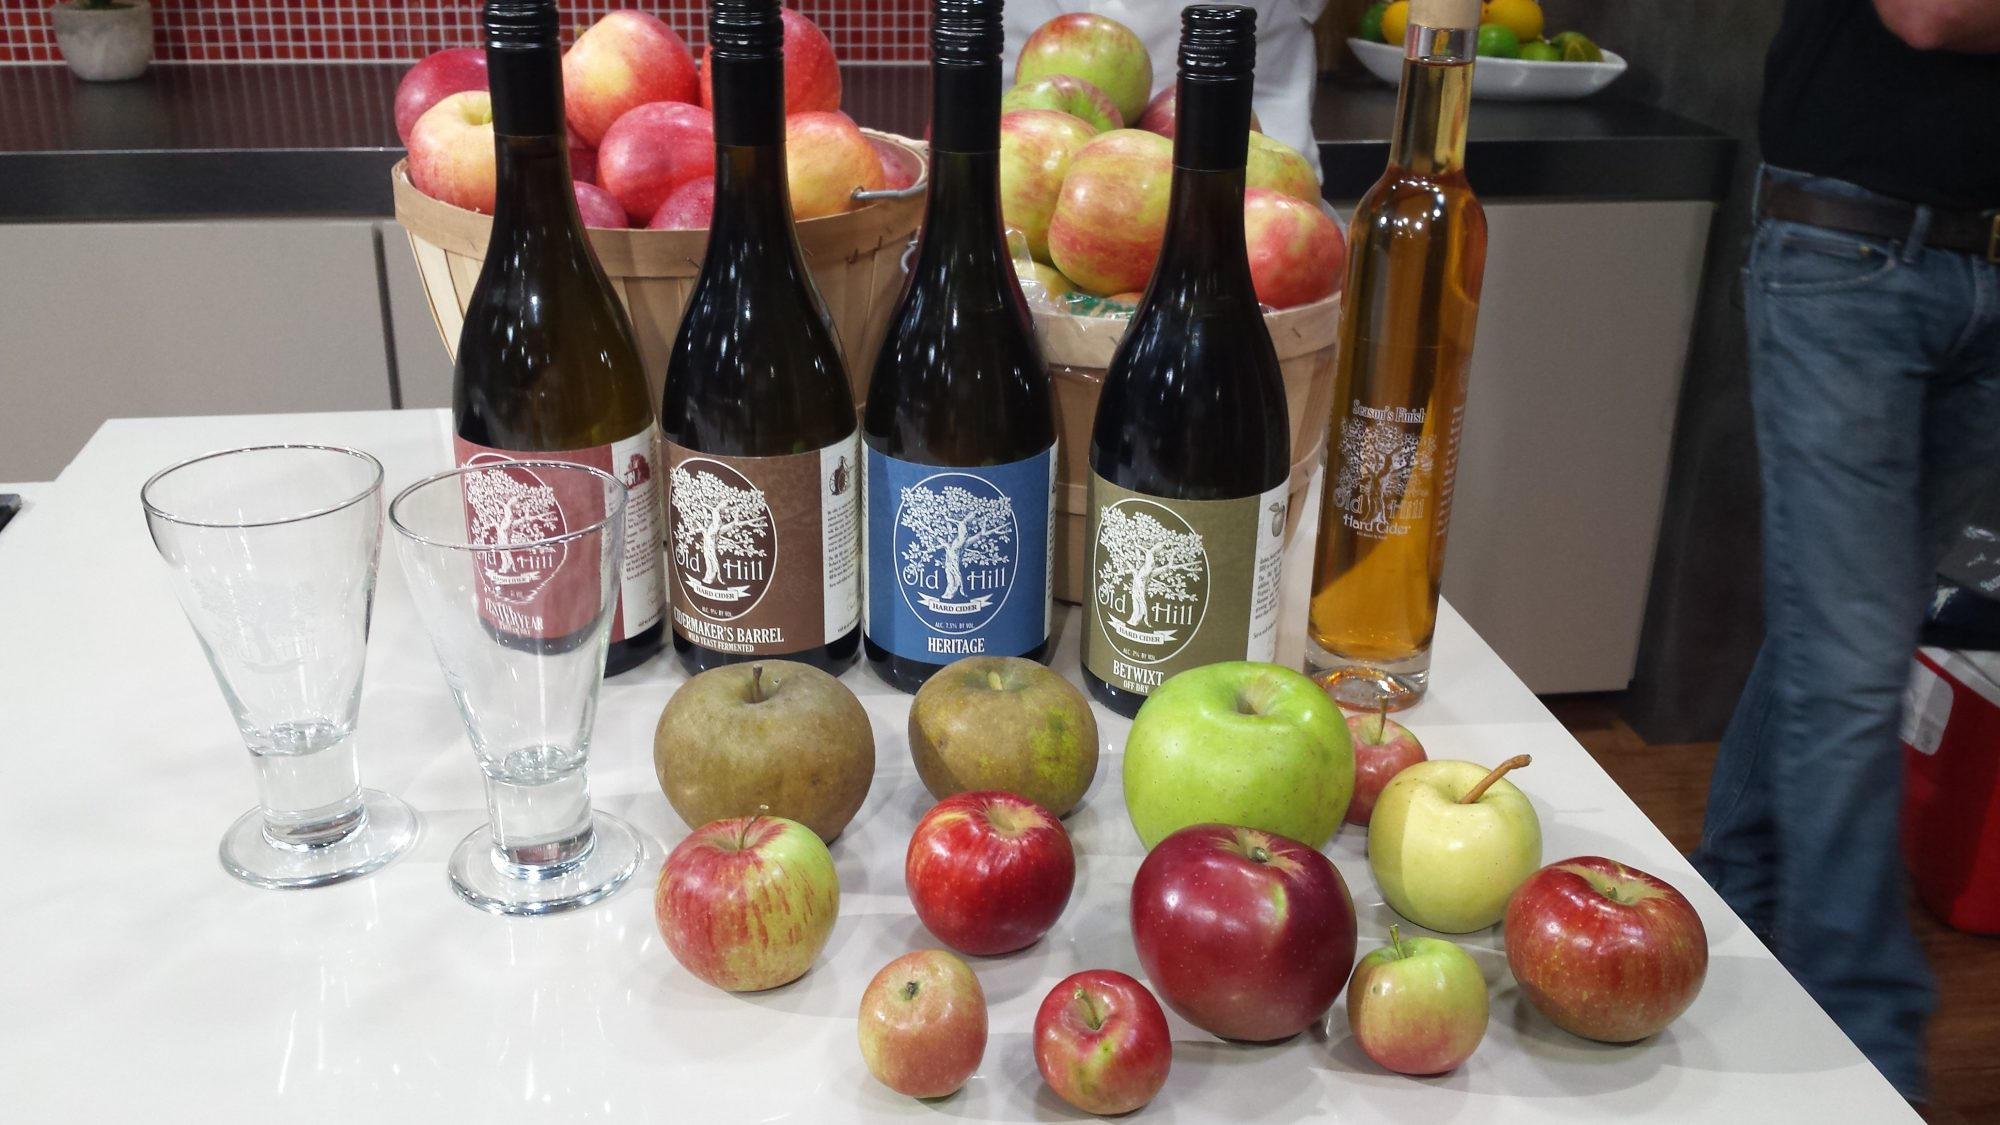 old-hill-cider-and-showalter-orchard.jpg